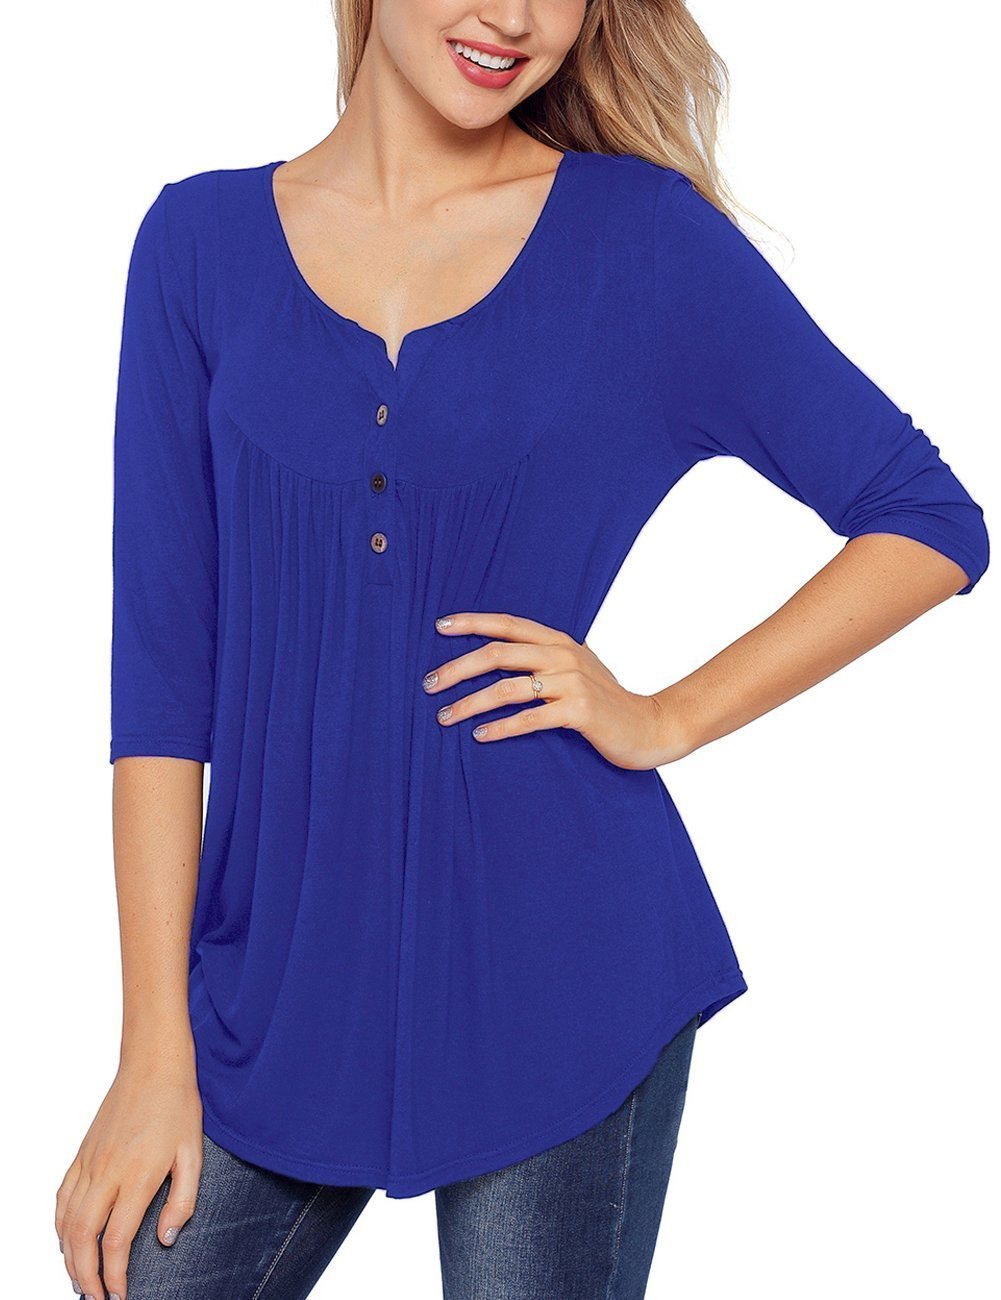 Blingfit Long Sleeve Loose Fit Casual Solid Color Front Pleated Shirts Tunic Blouse Henley Tops for Women Ladies Girls